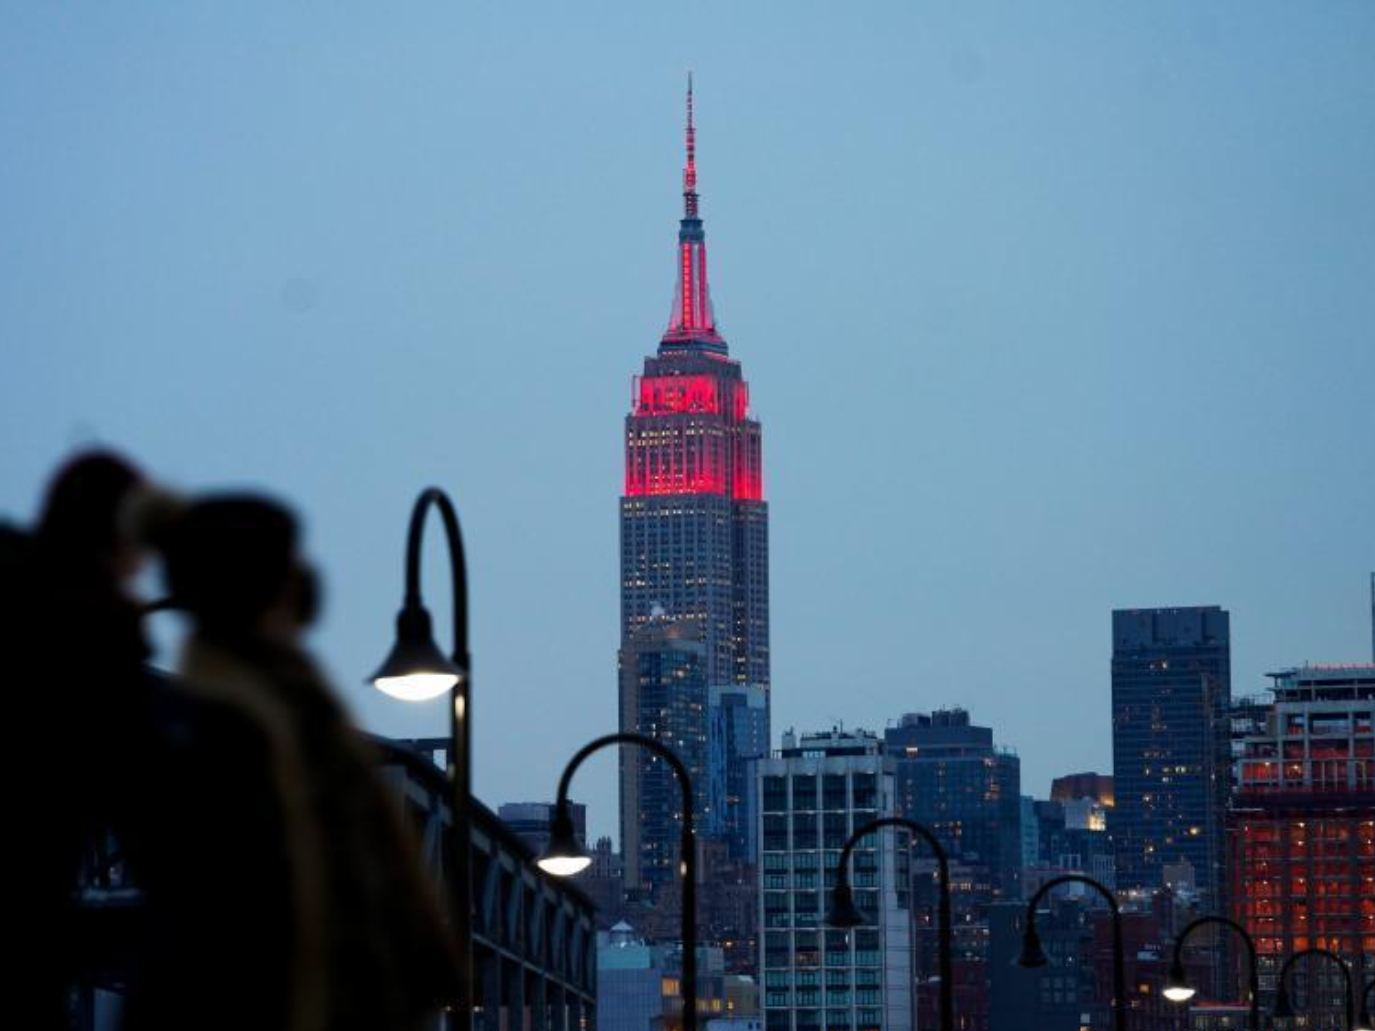 Multiple landmarks in New York City lit up to celebrate Chinese Lunar New Year